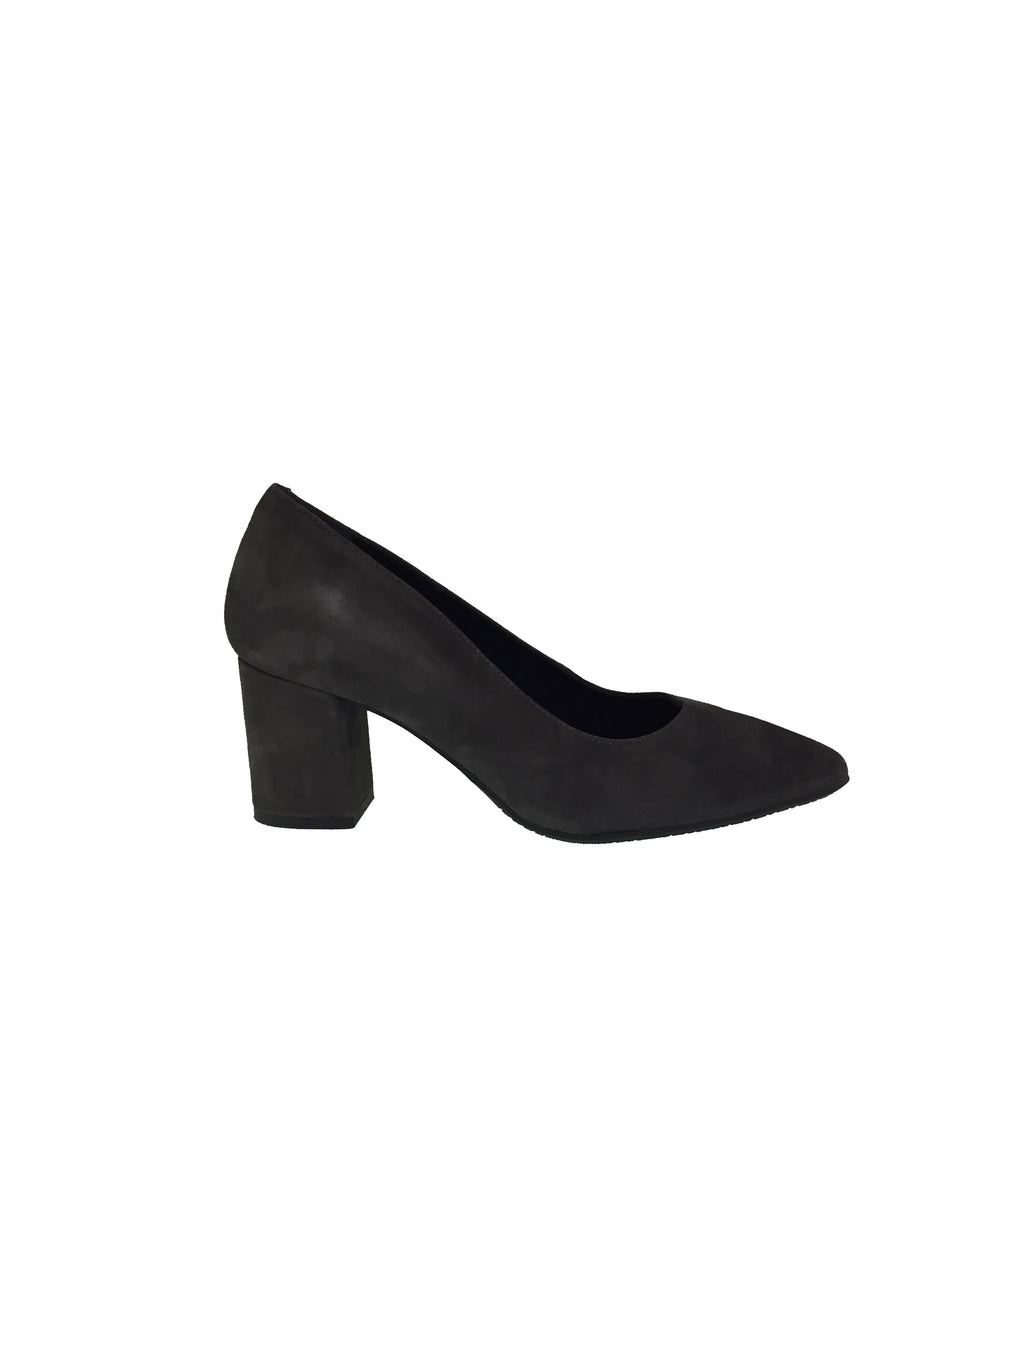 Ateliers Rio Women's Shoes- Block heel pump women's Shoe